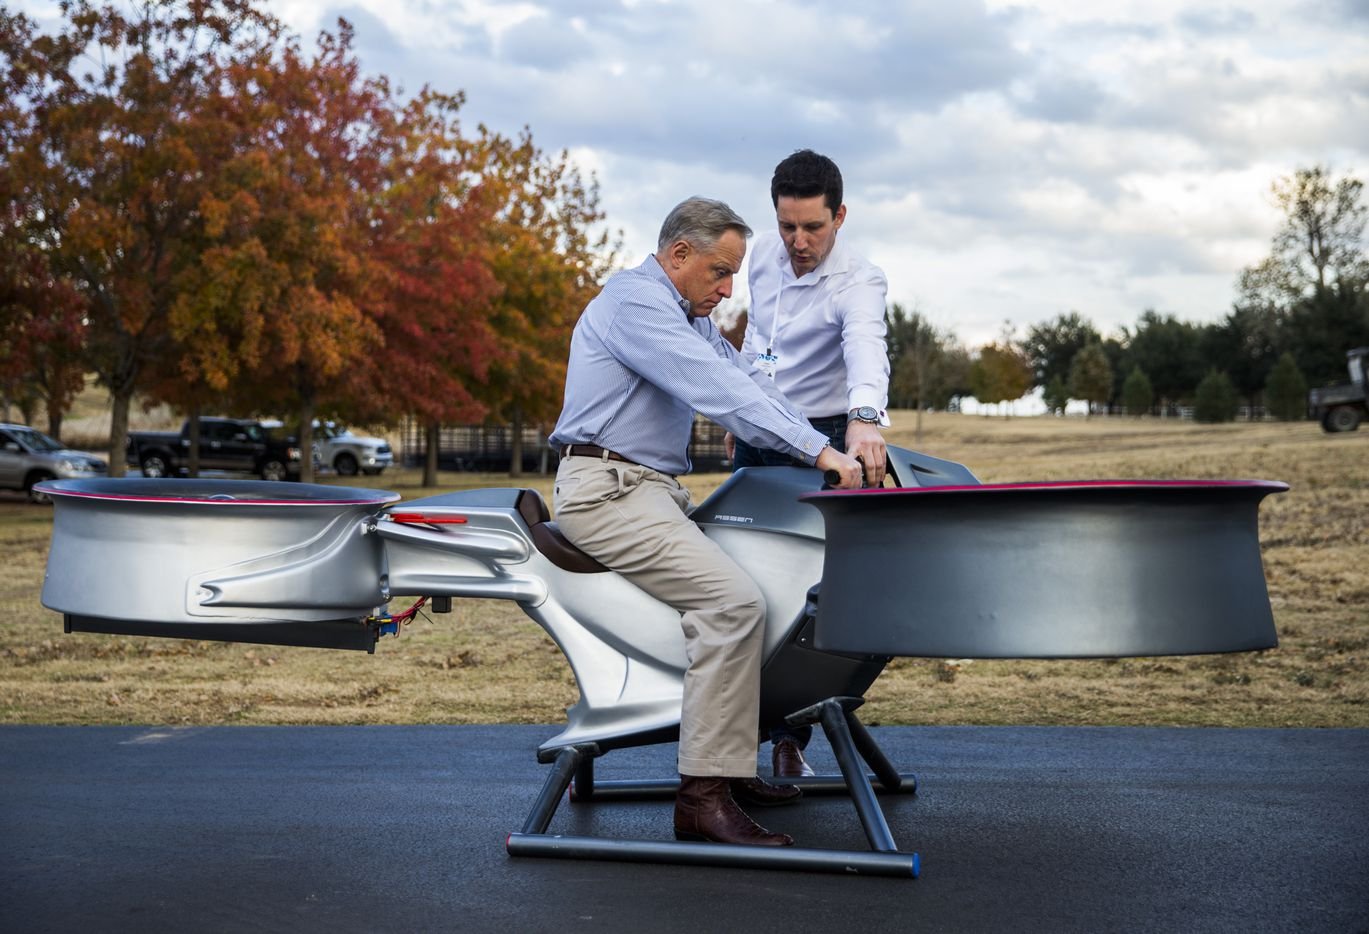 Ross Perot Jr. (left) takes a seat on a prototype of the Assen A2 Avenger sky bike with instructions from Assen Andonov (right), CEO and Founder of Assen Aeronautics, during an invitation-only summit at Circle T Ranch in Westlake, Texas. (Ashley Landis/The Dallas Morning News)